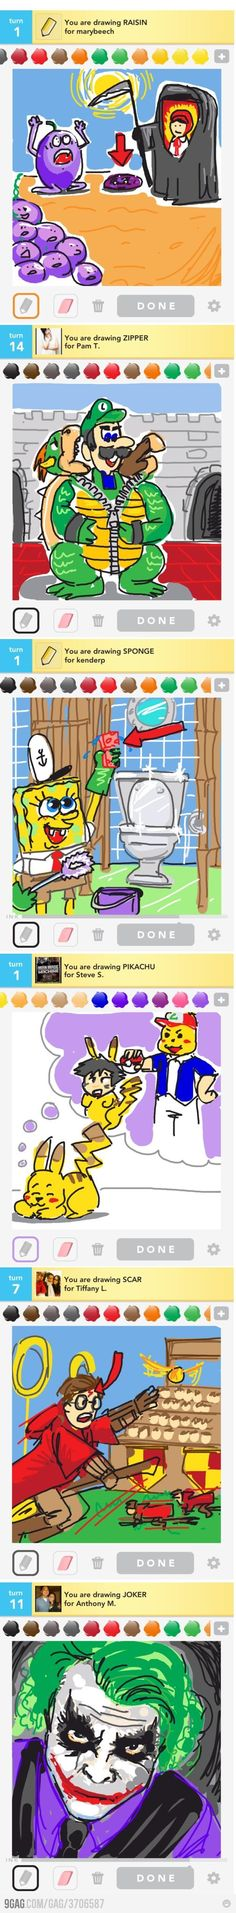 Some epic drawings on Draw Something!